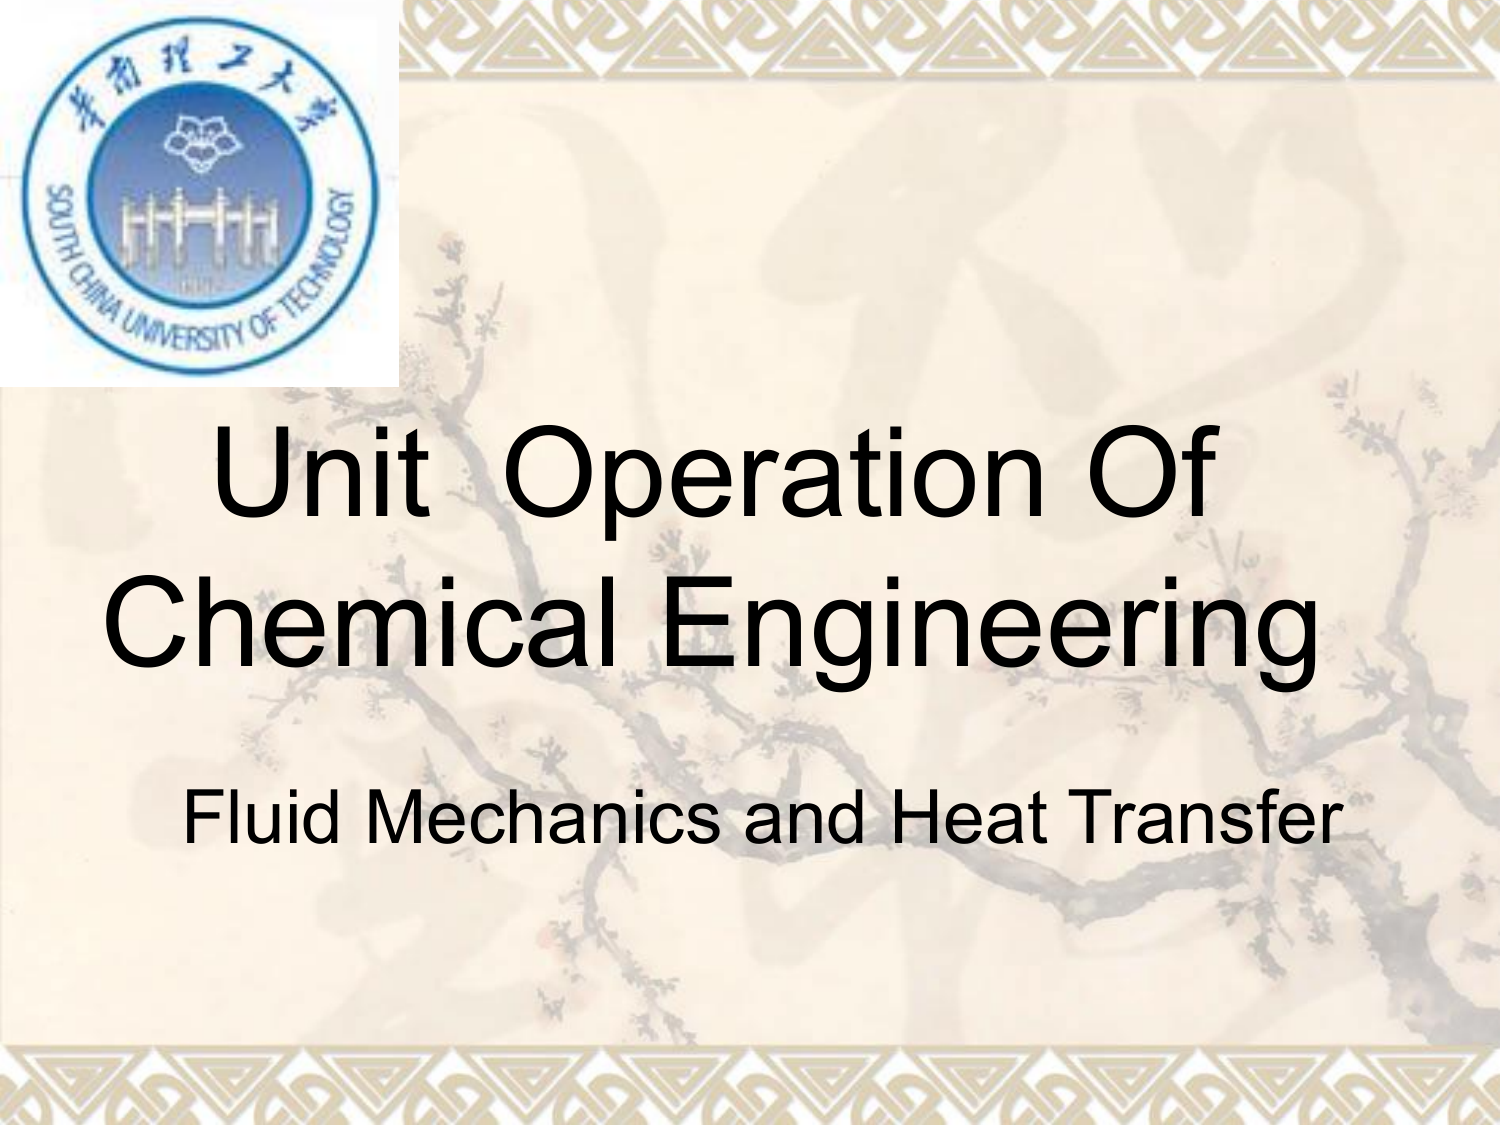 Unit Operations of Chemical Engineering  It is most popular